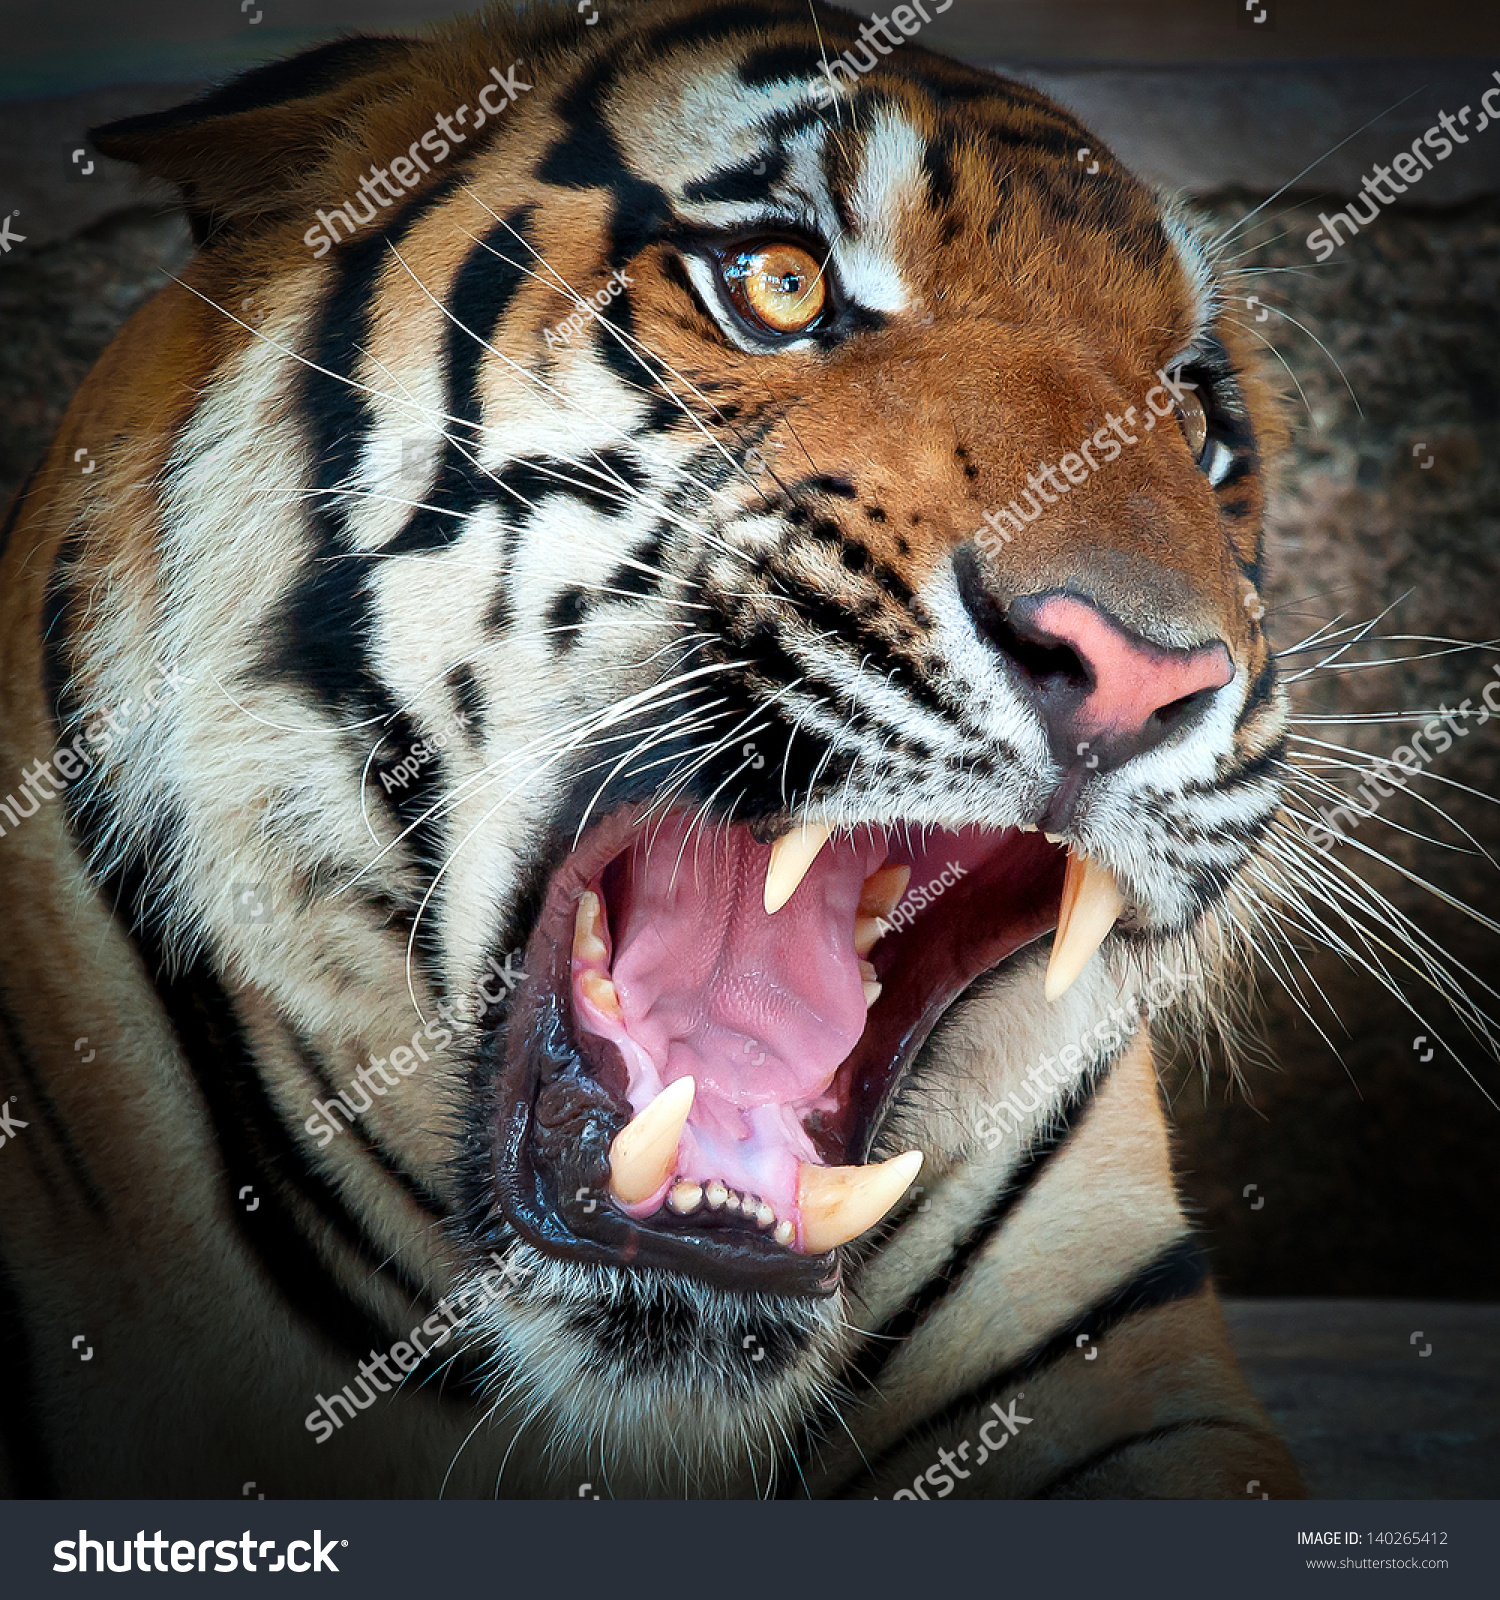 Close Tiger Get Angry Looking Mad Stock Photo 140265412 ...